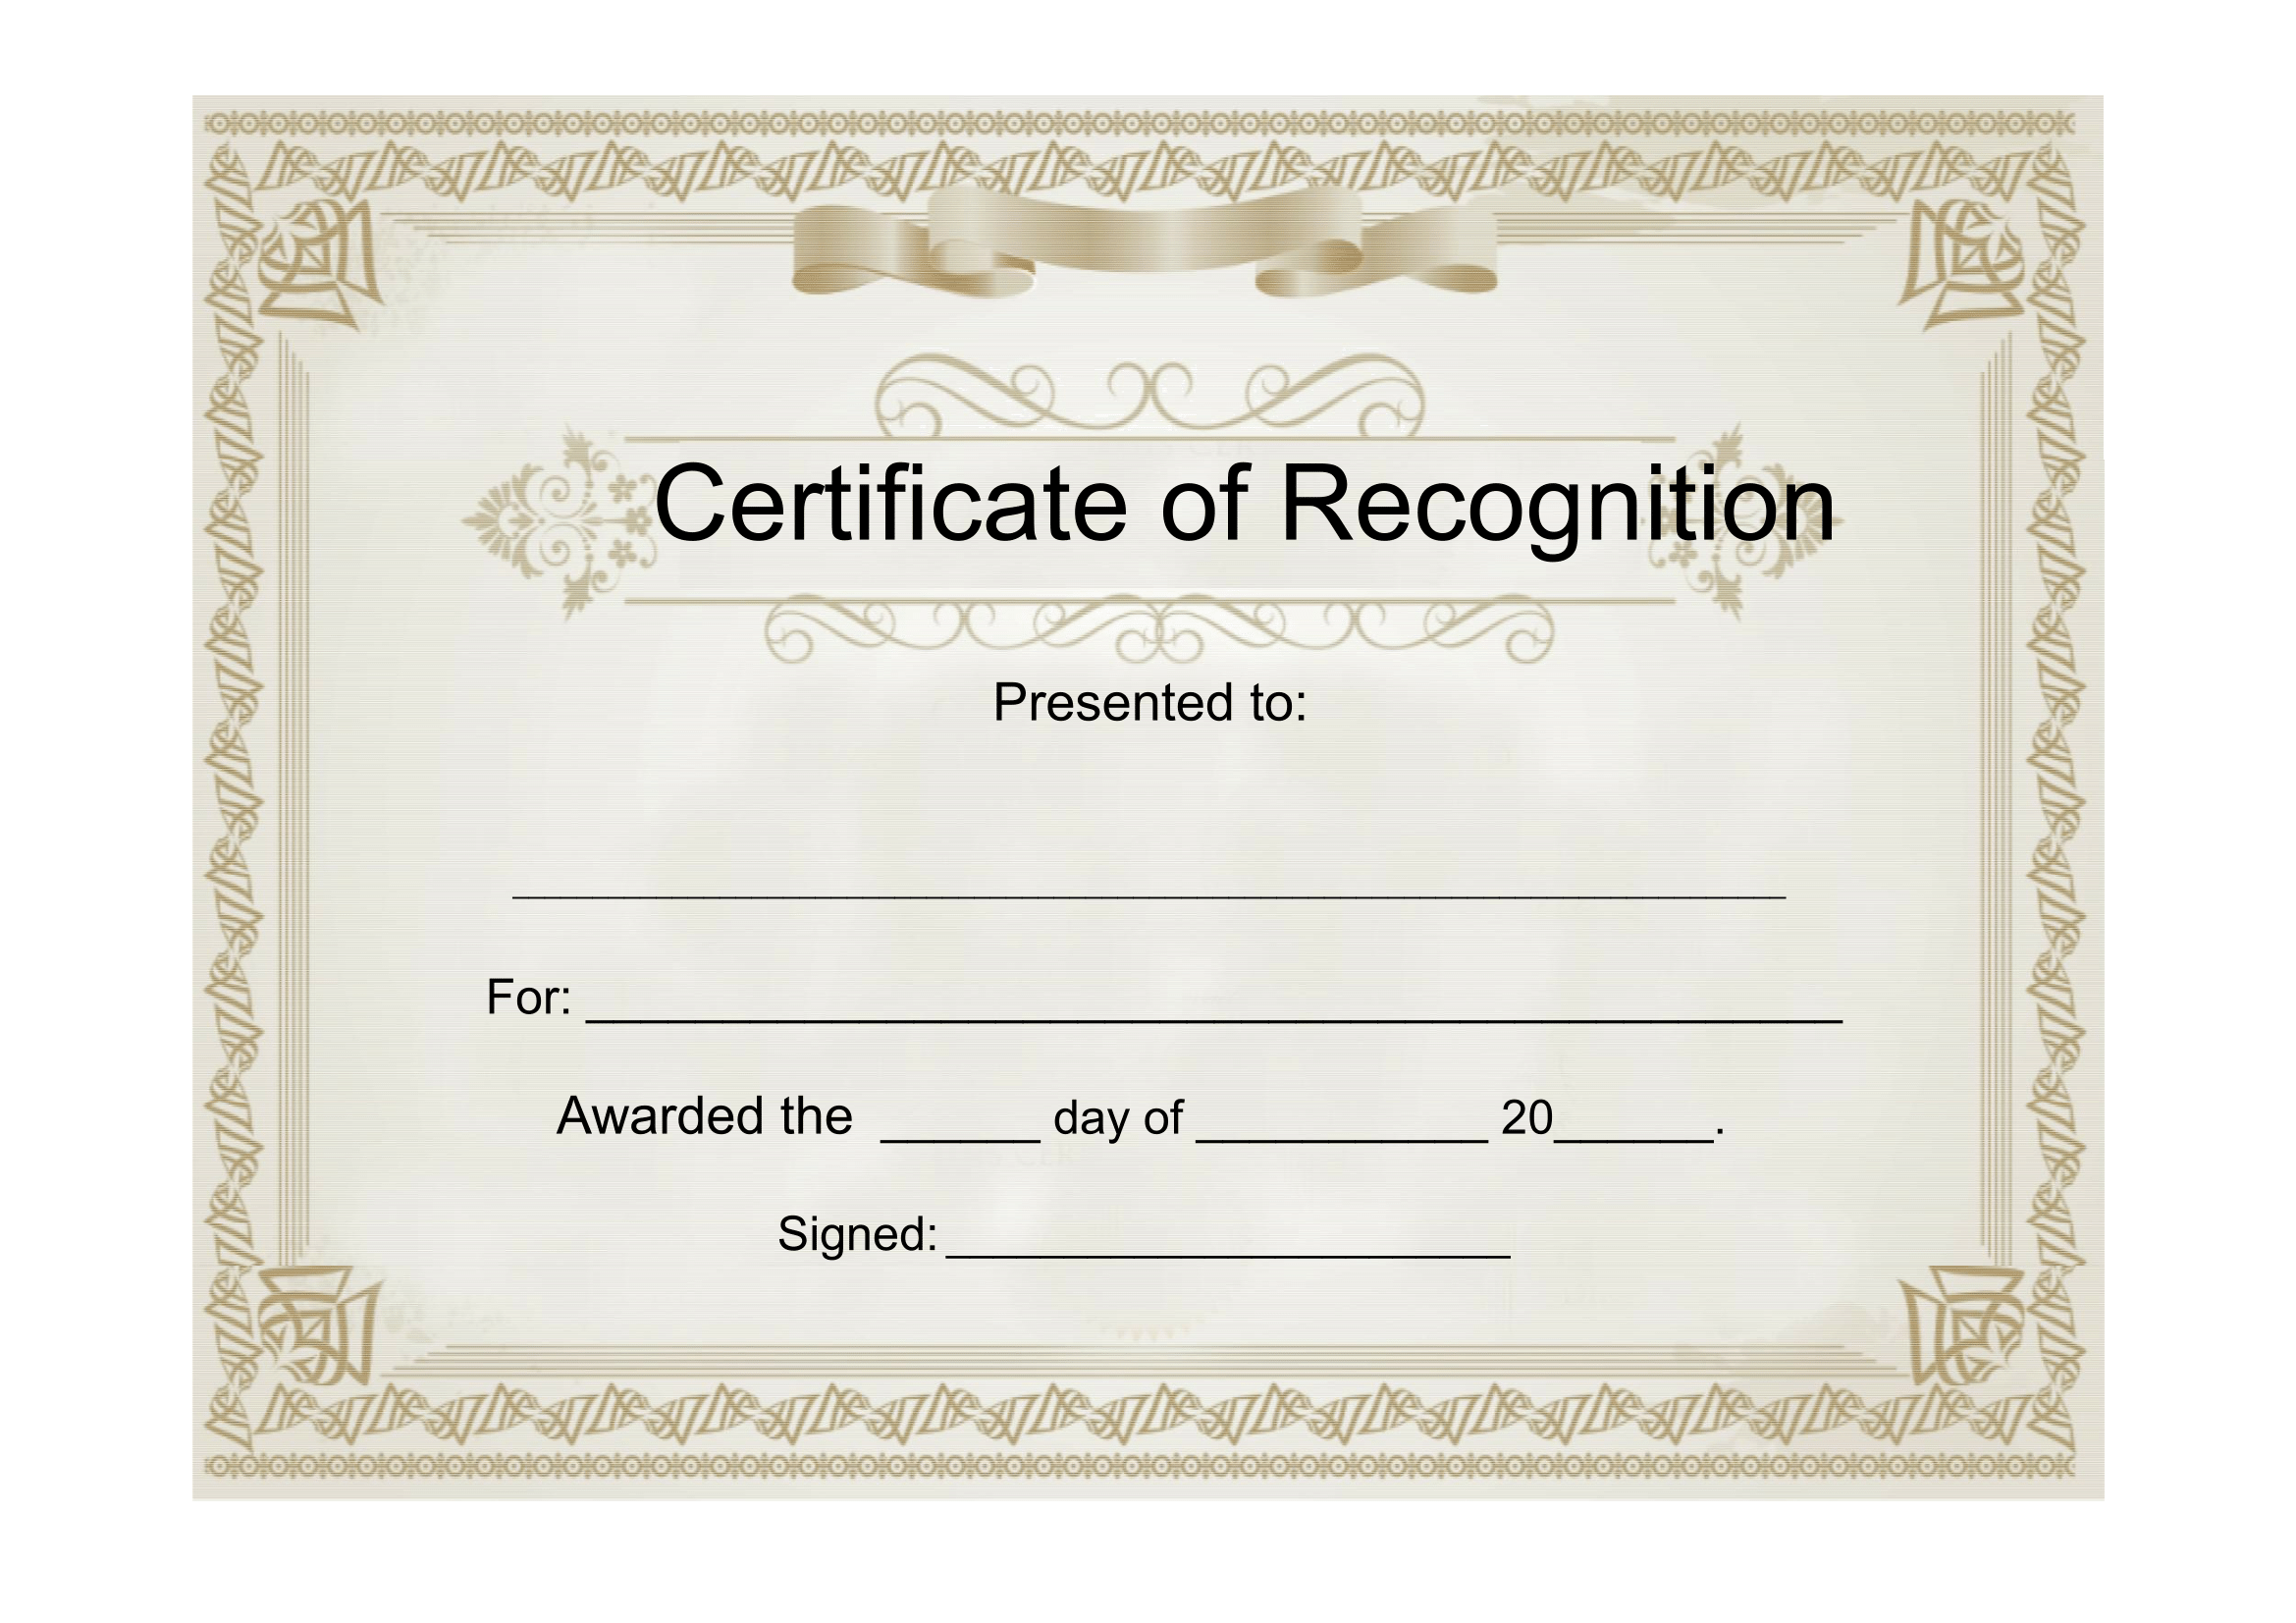 Sample Certificate Of Recognition Template 5